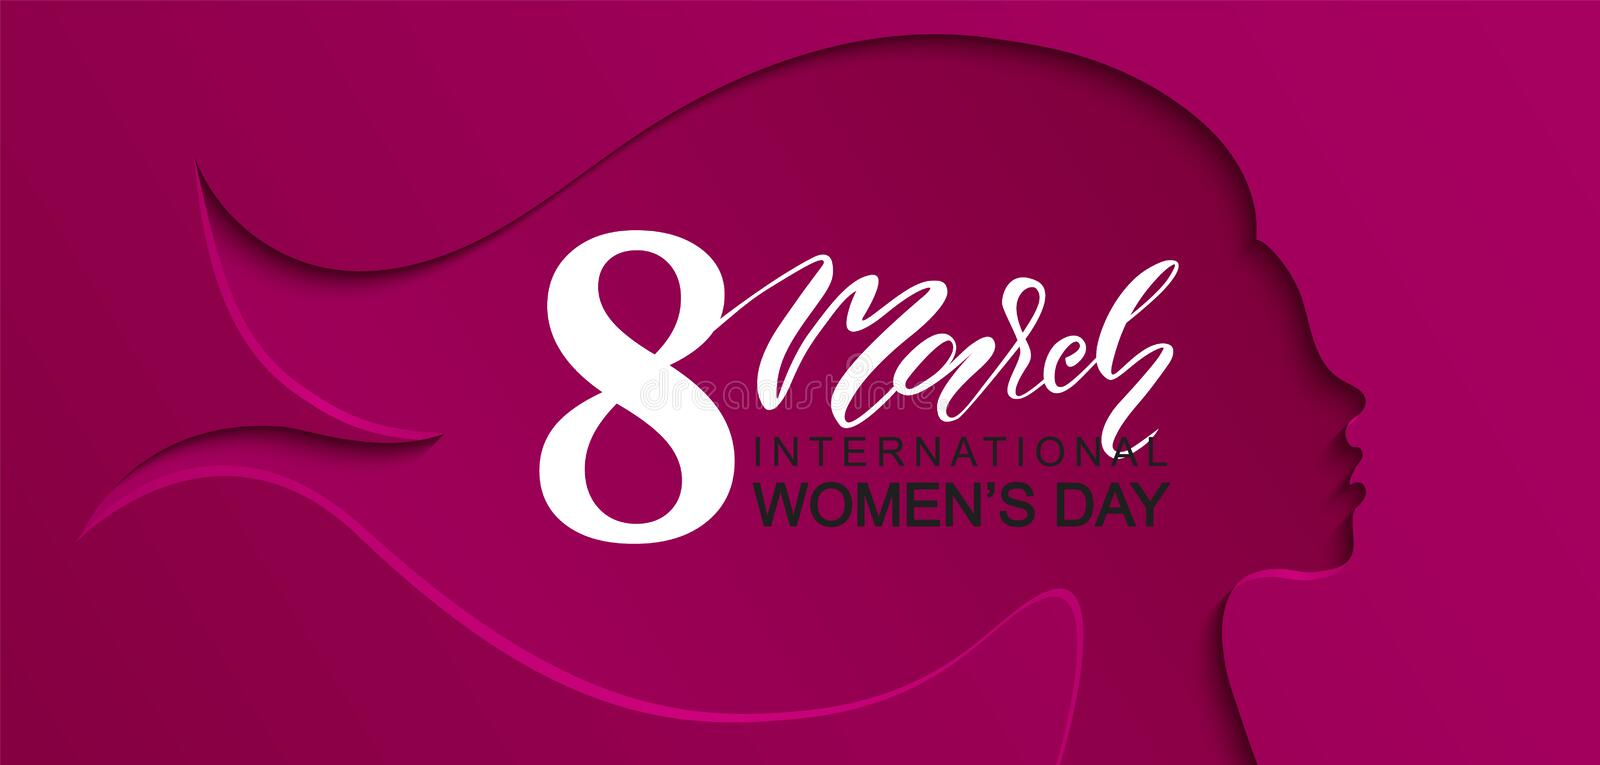 8 March Happy Women s Day banner. Beautiful Background with female silhouette .Vector illustration for website,cards stock illustration